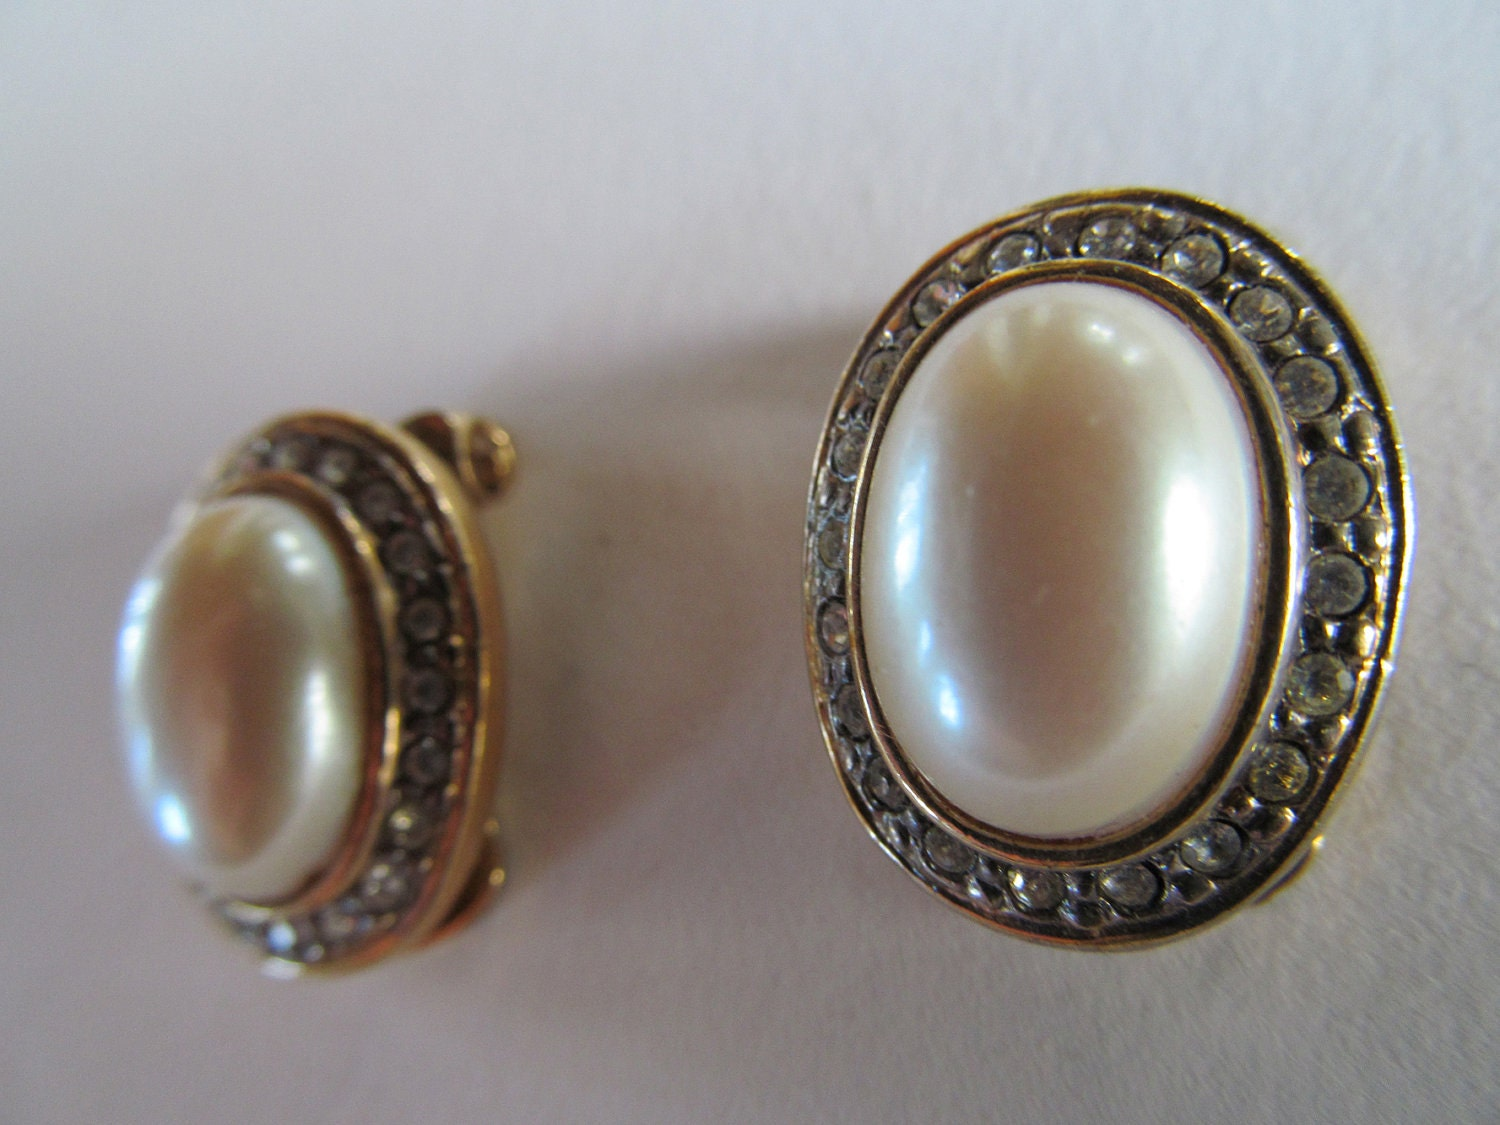 faux pearl and diamond earrings costume jewelry clip on. Black Bedroom Furniture Sets. Home Design Ideas